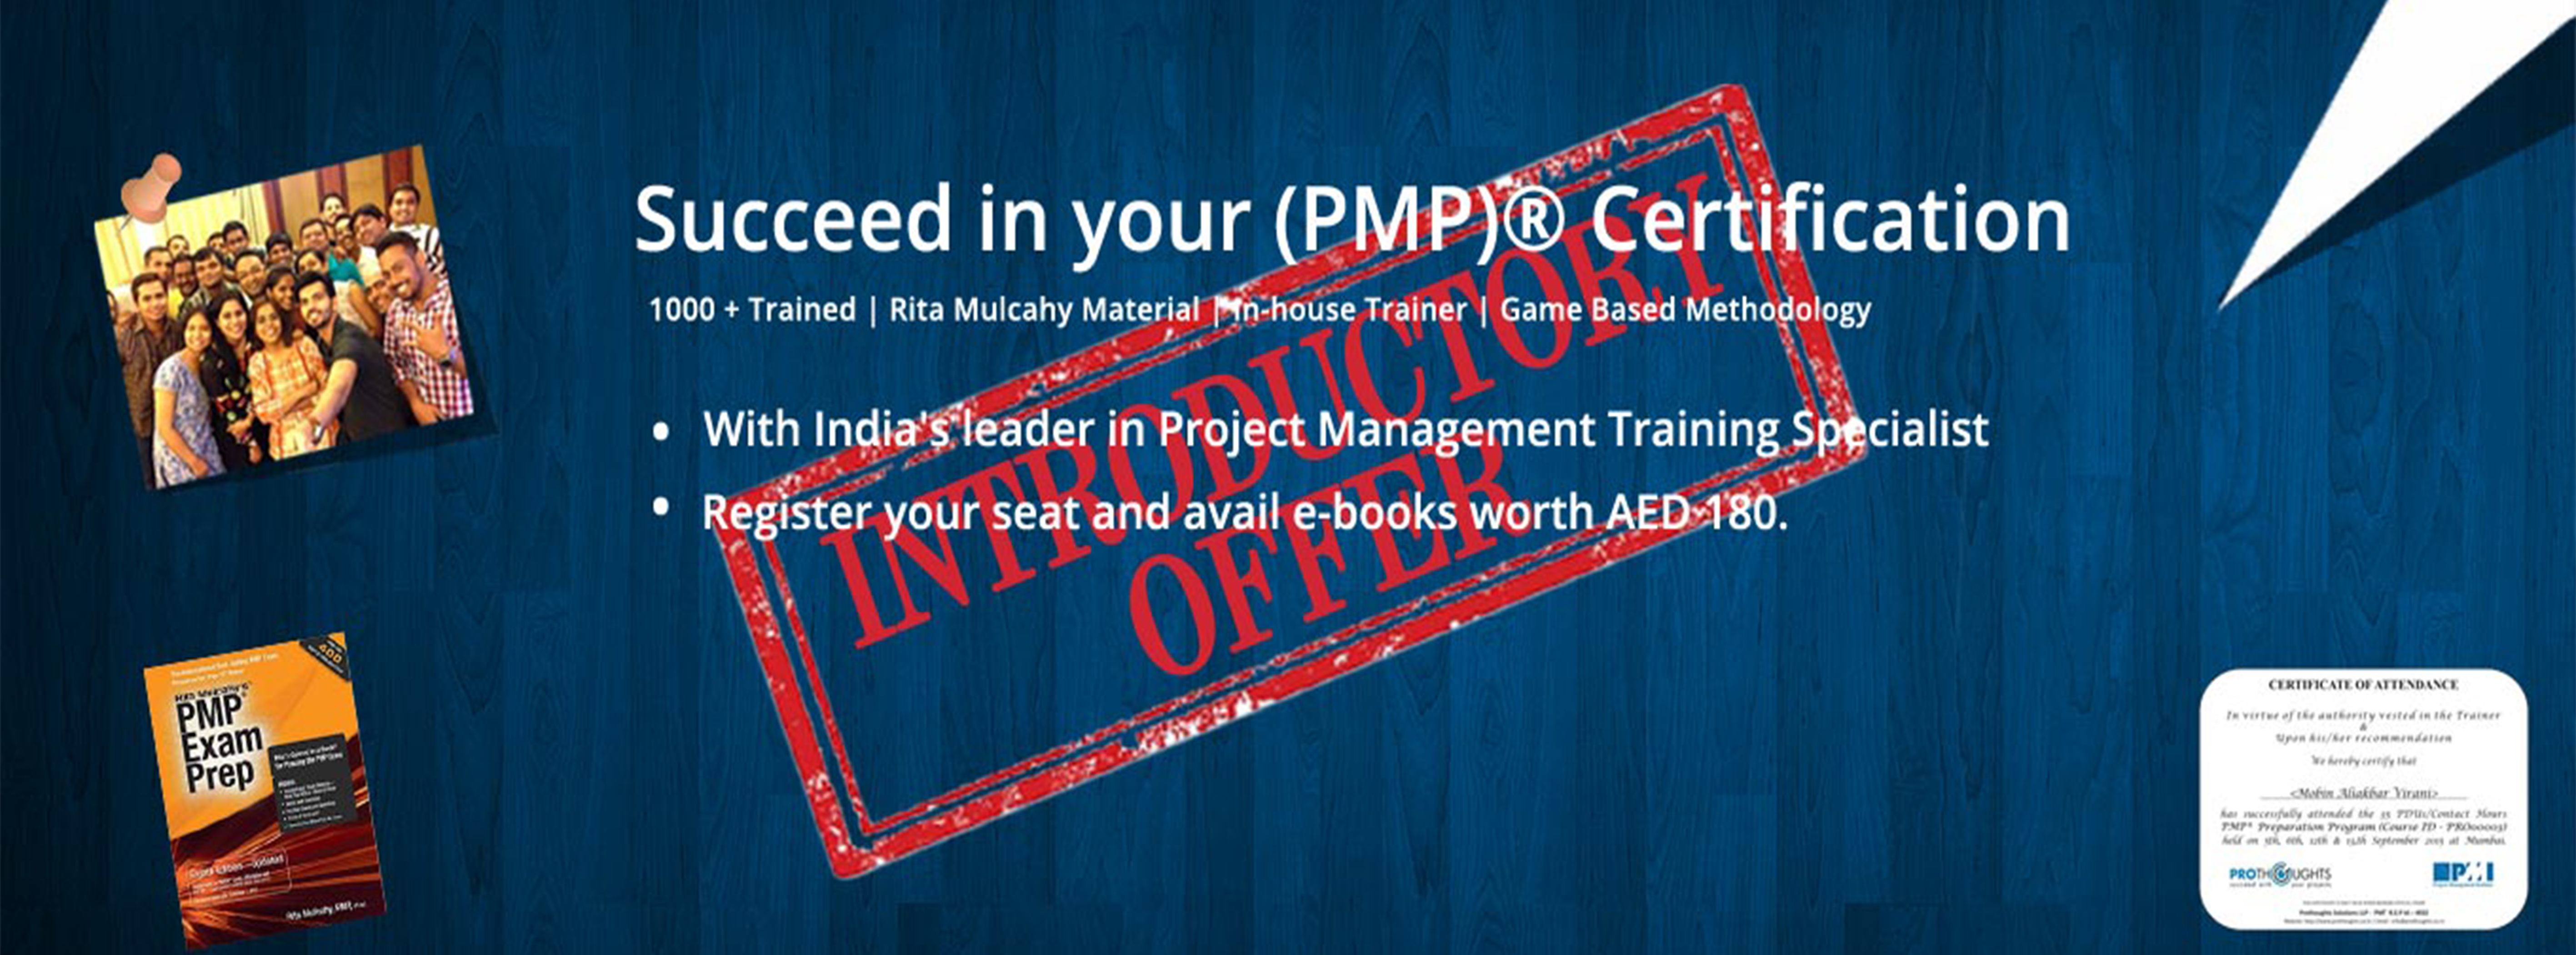 Pmp Certification Training And Courses In Dubai Uae Prothoughts